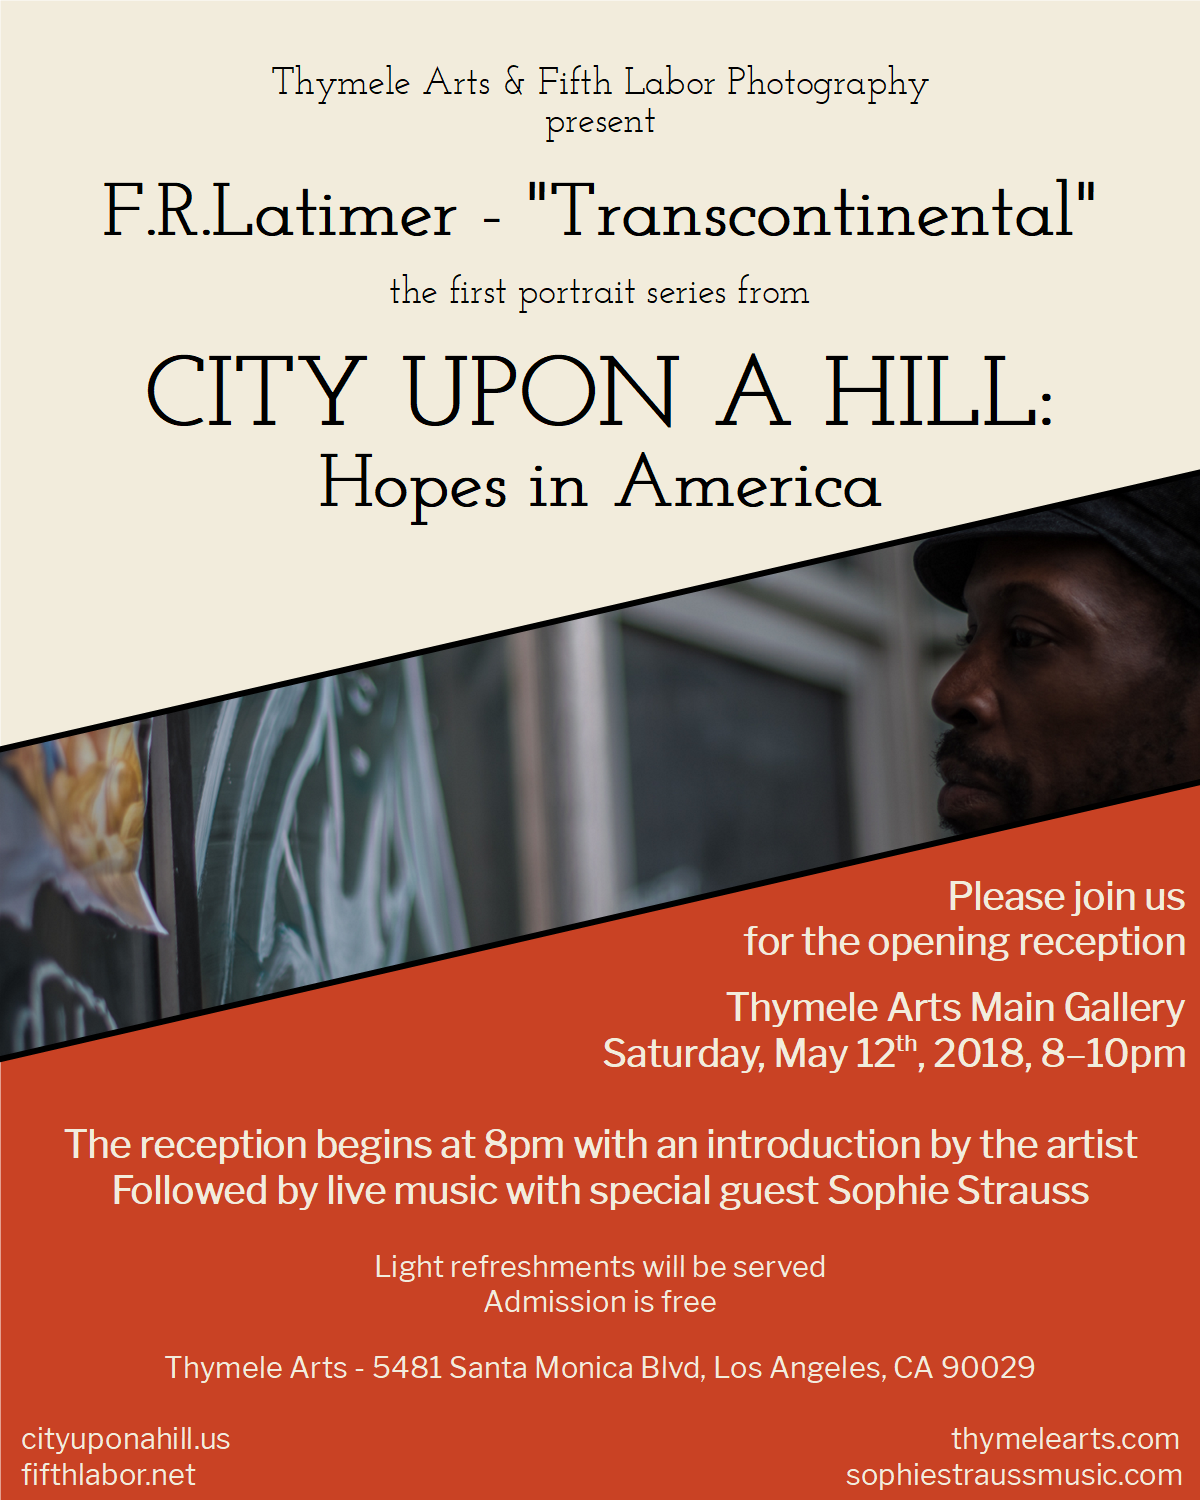 F.R.Latimer Photographer - City Upon a Hill Reception, May 12th 8pm